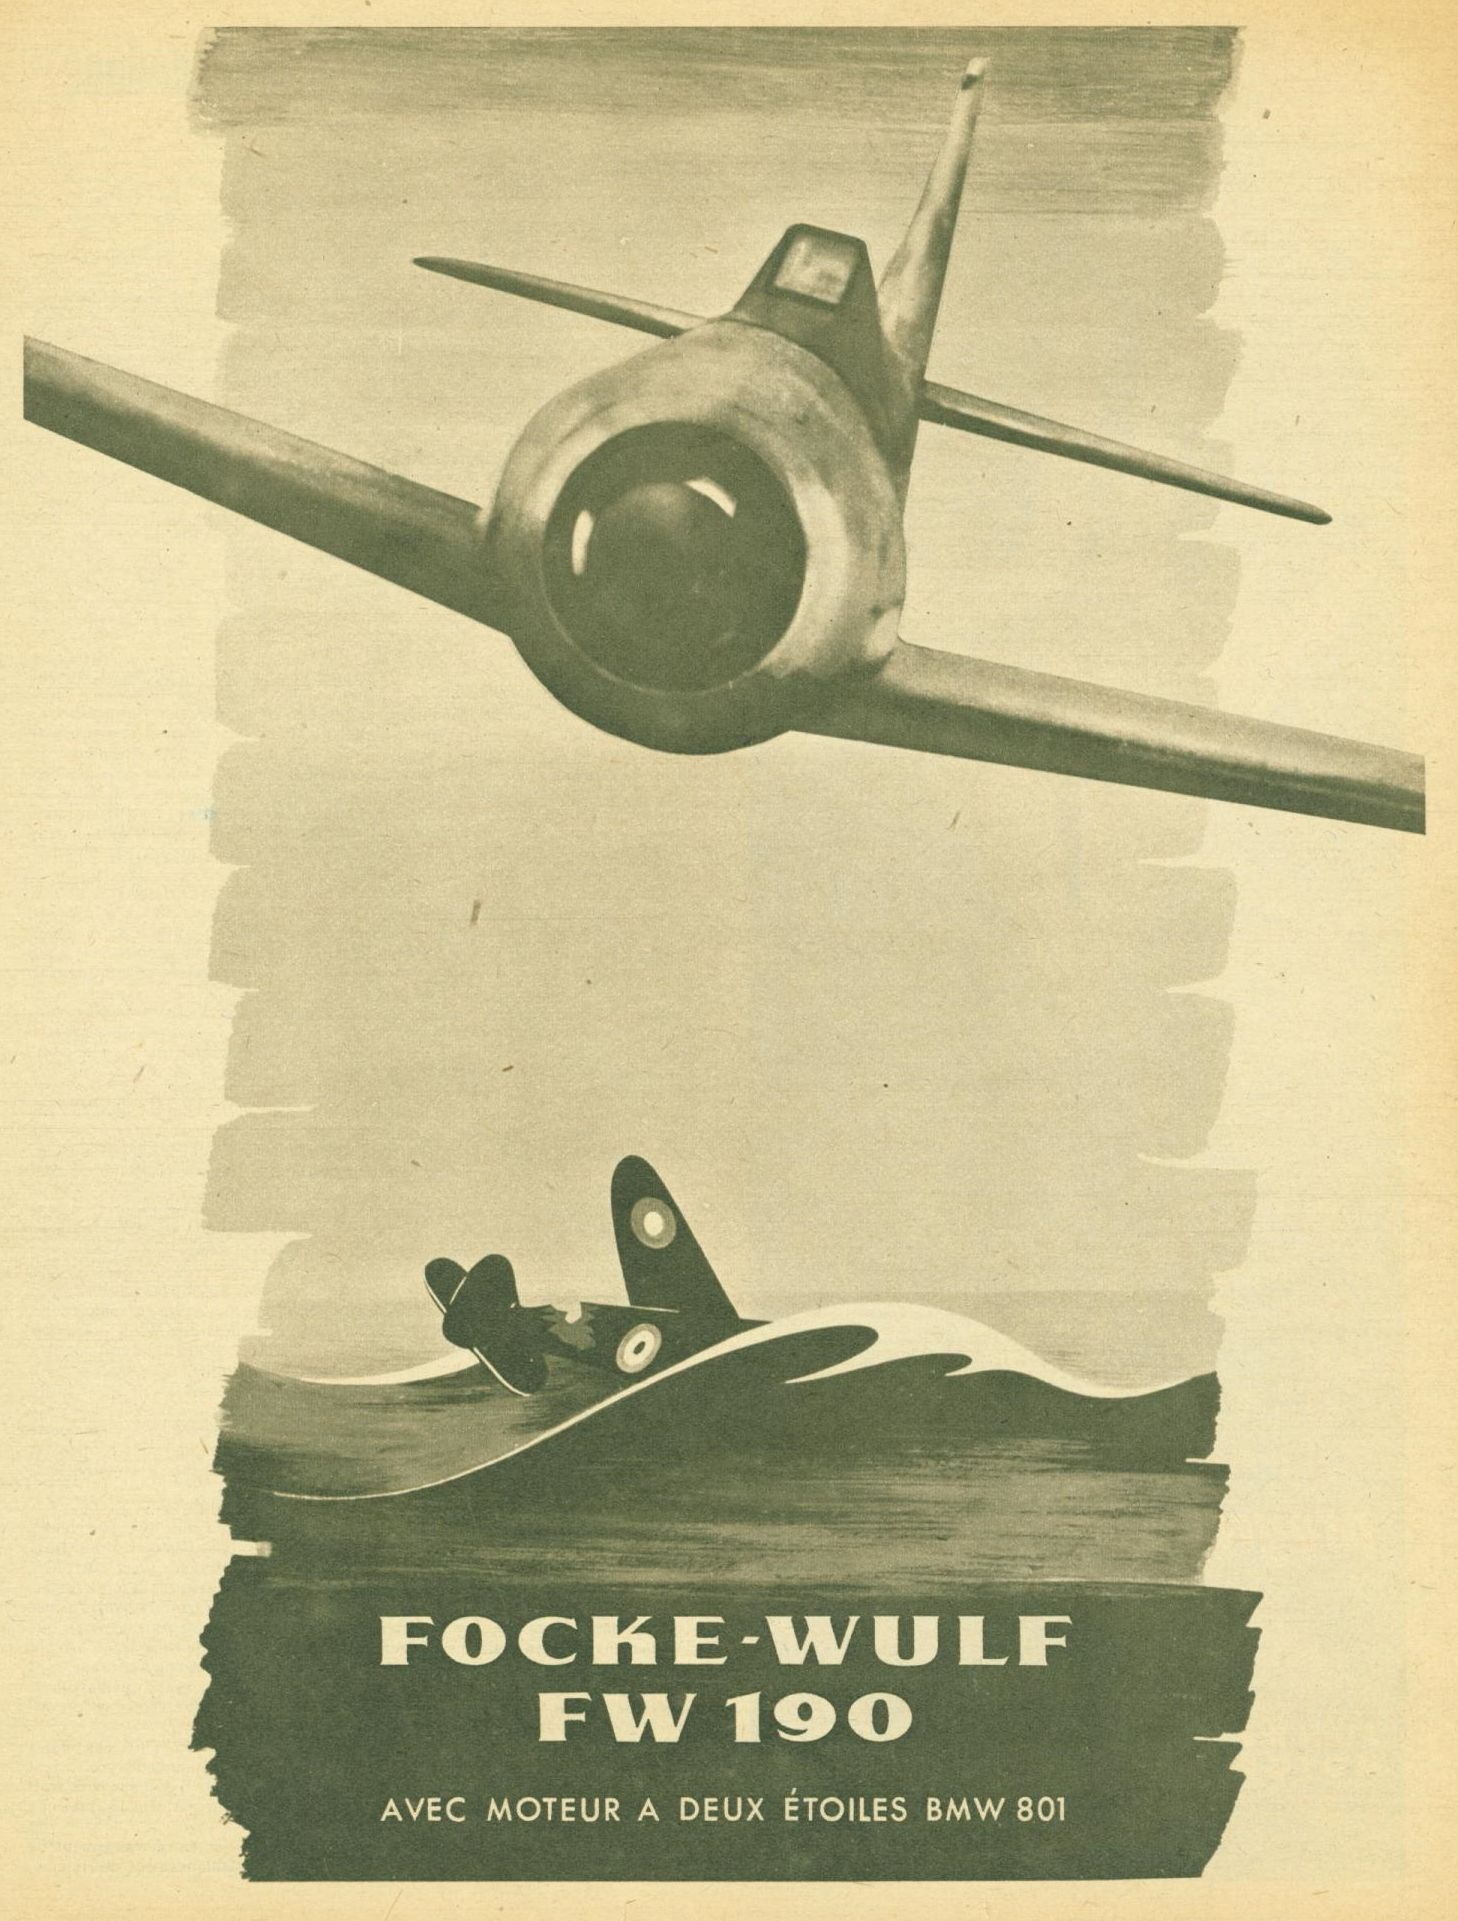 Pin by Albert Hofmann on aeroplane | Aviation posters, Wwii